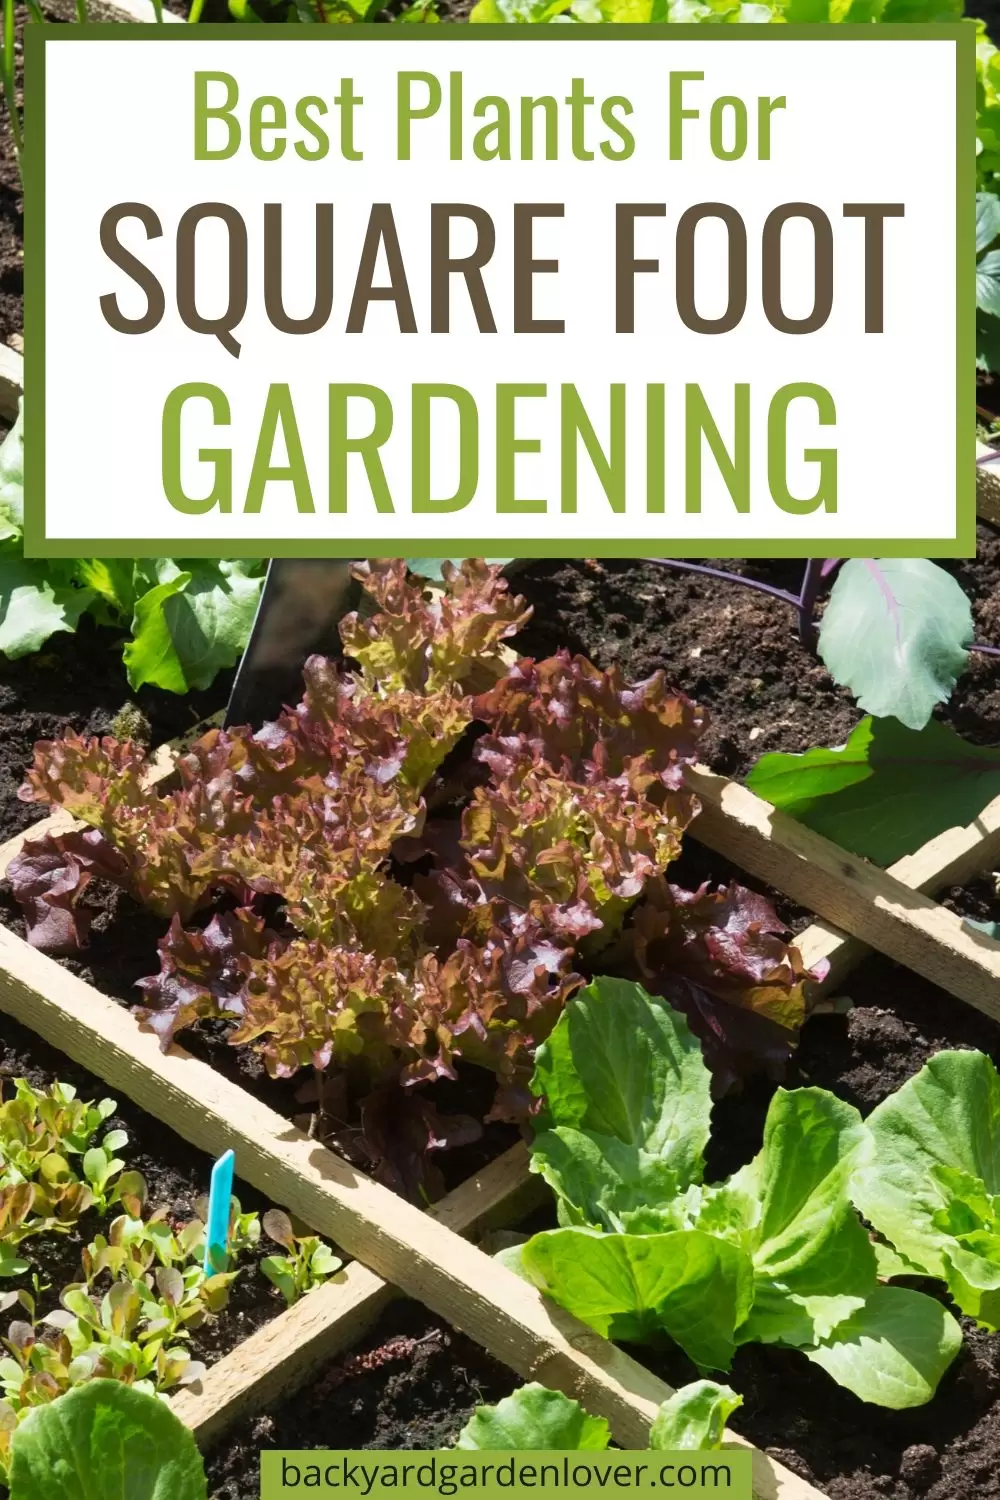 66a5aa06935ac6f2e60145a3e92d1a6c - Garden Time's Square Foot Gardening Potting Soil